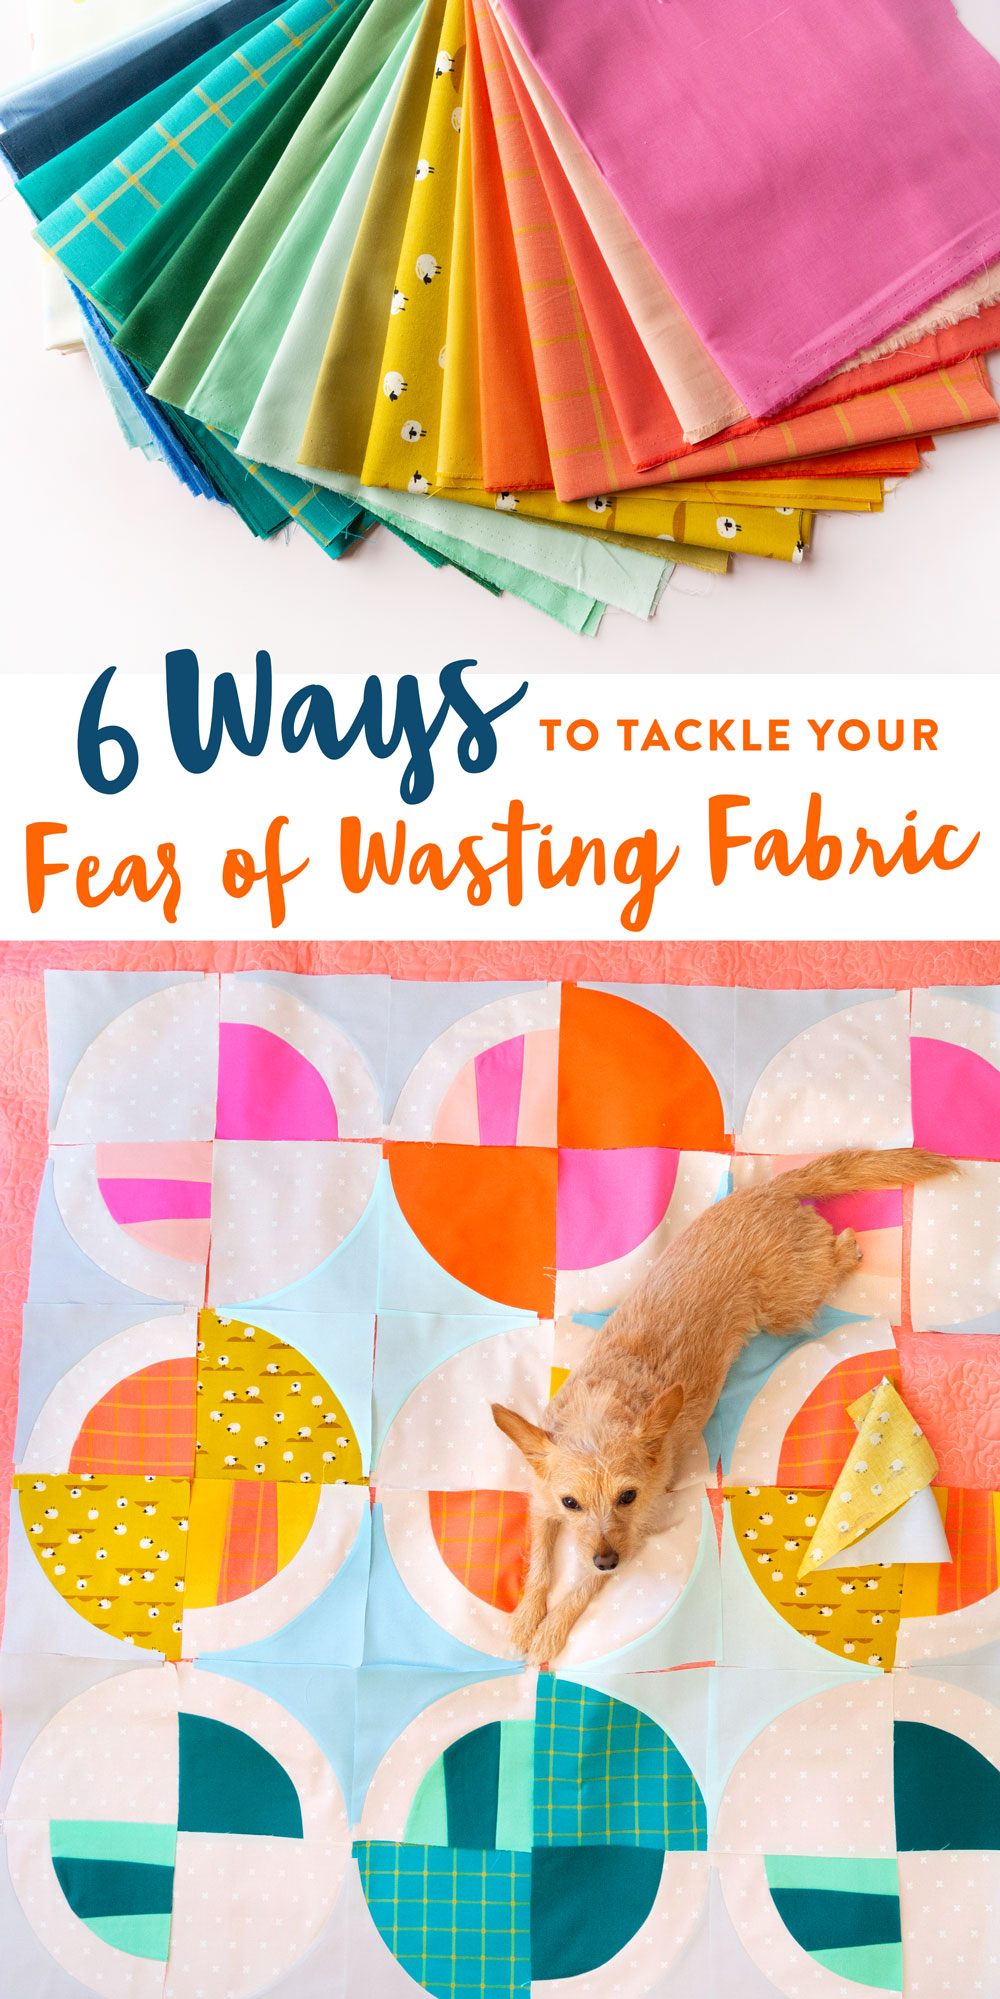 6 Ways to tackle your fear of wasting fabric. Have you ever been crippled by indecision because you're afraid to mess things up and waste fabric? These techniques will help. | Suzy Quilts https://suzyquilts.com/tackle-your-fear-of-wasting-fabric